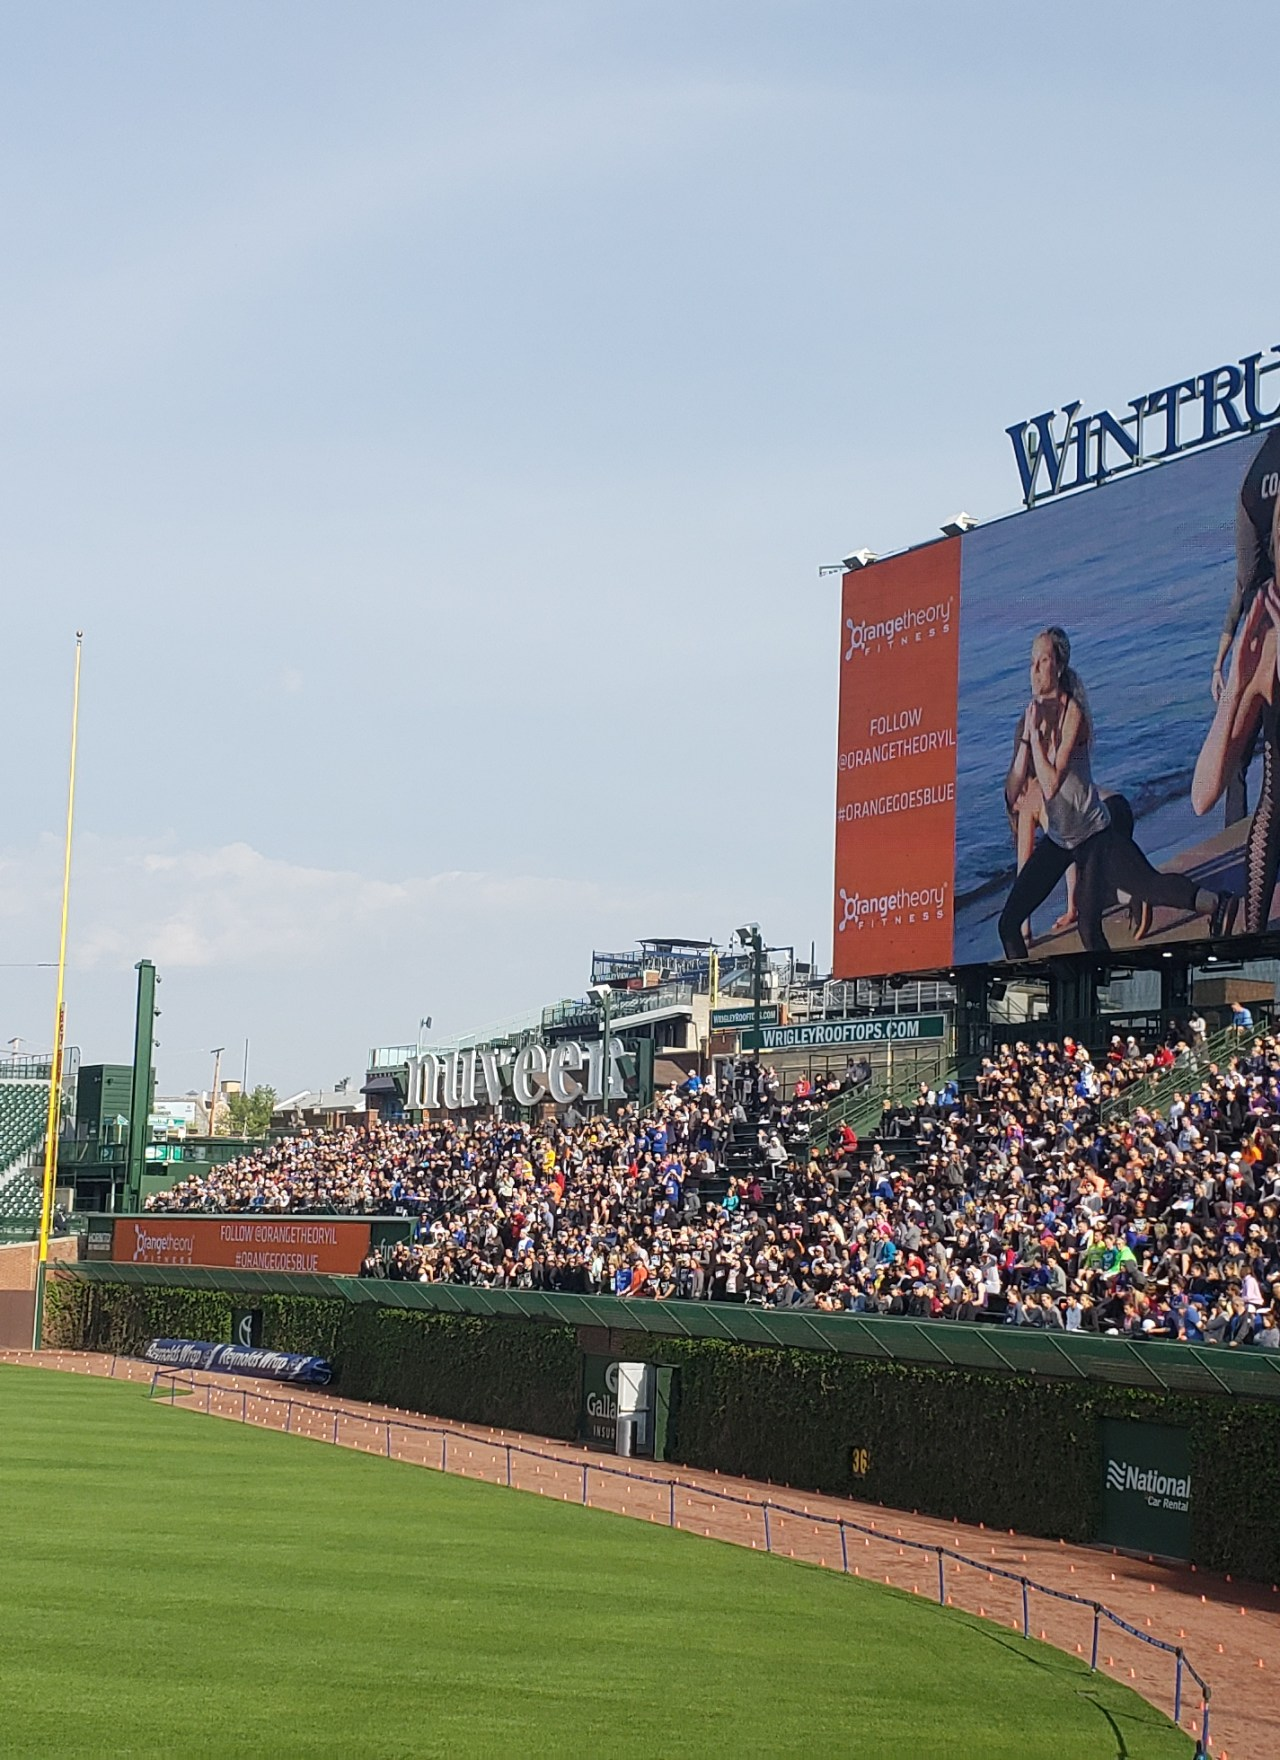 World's Largest HIIT Class Record Attempt at Wrigley Field